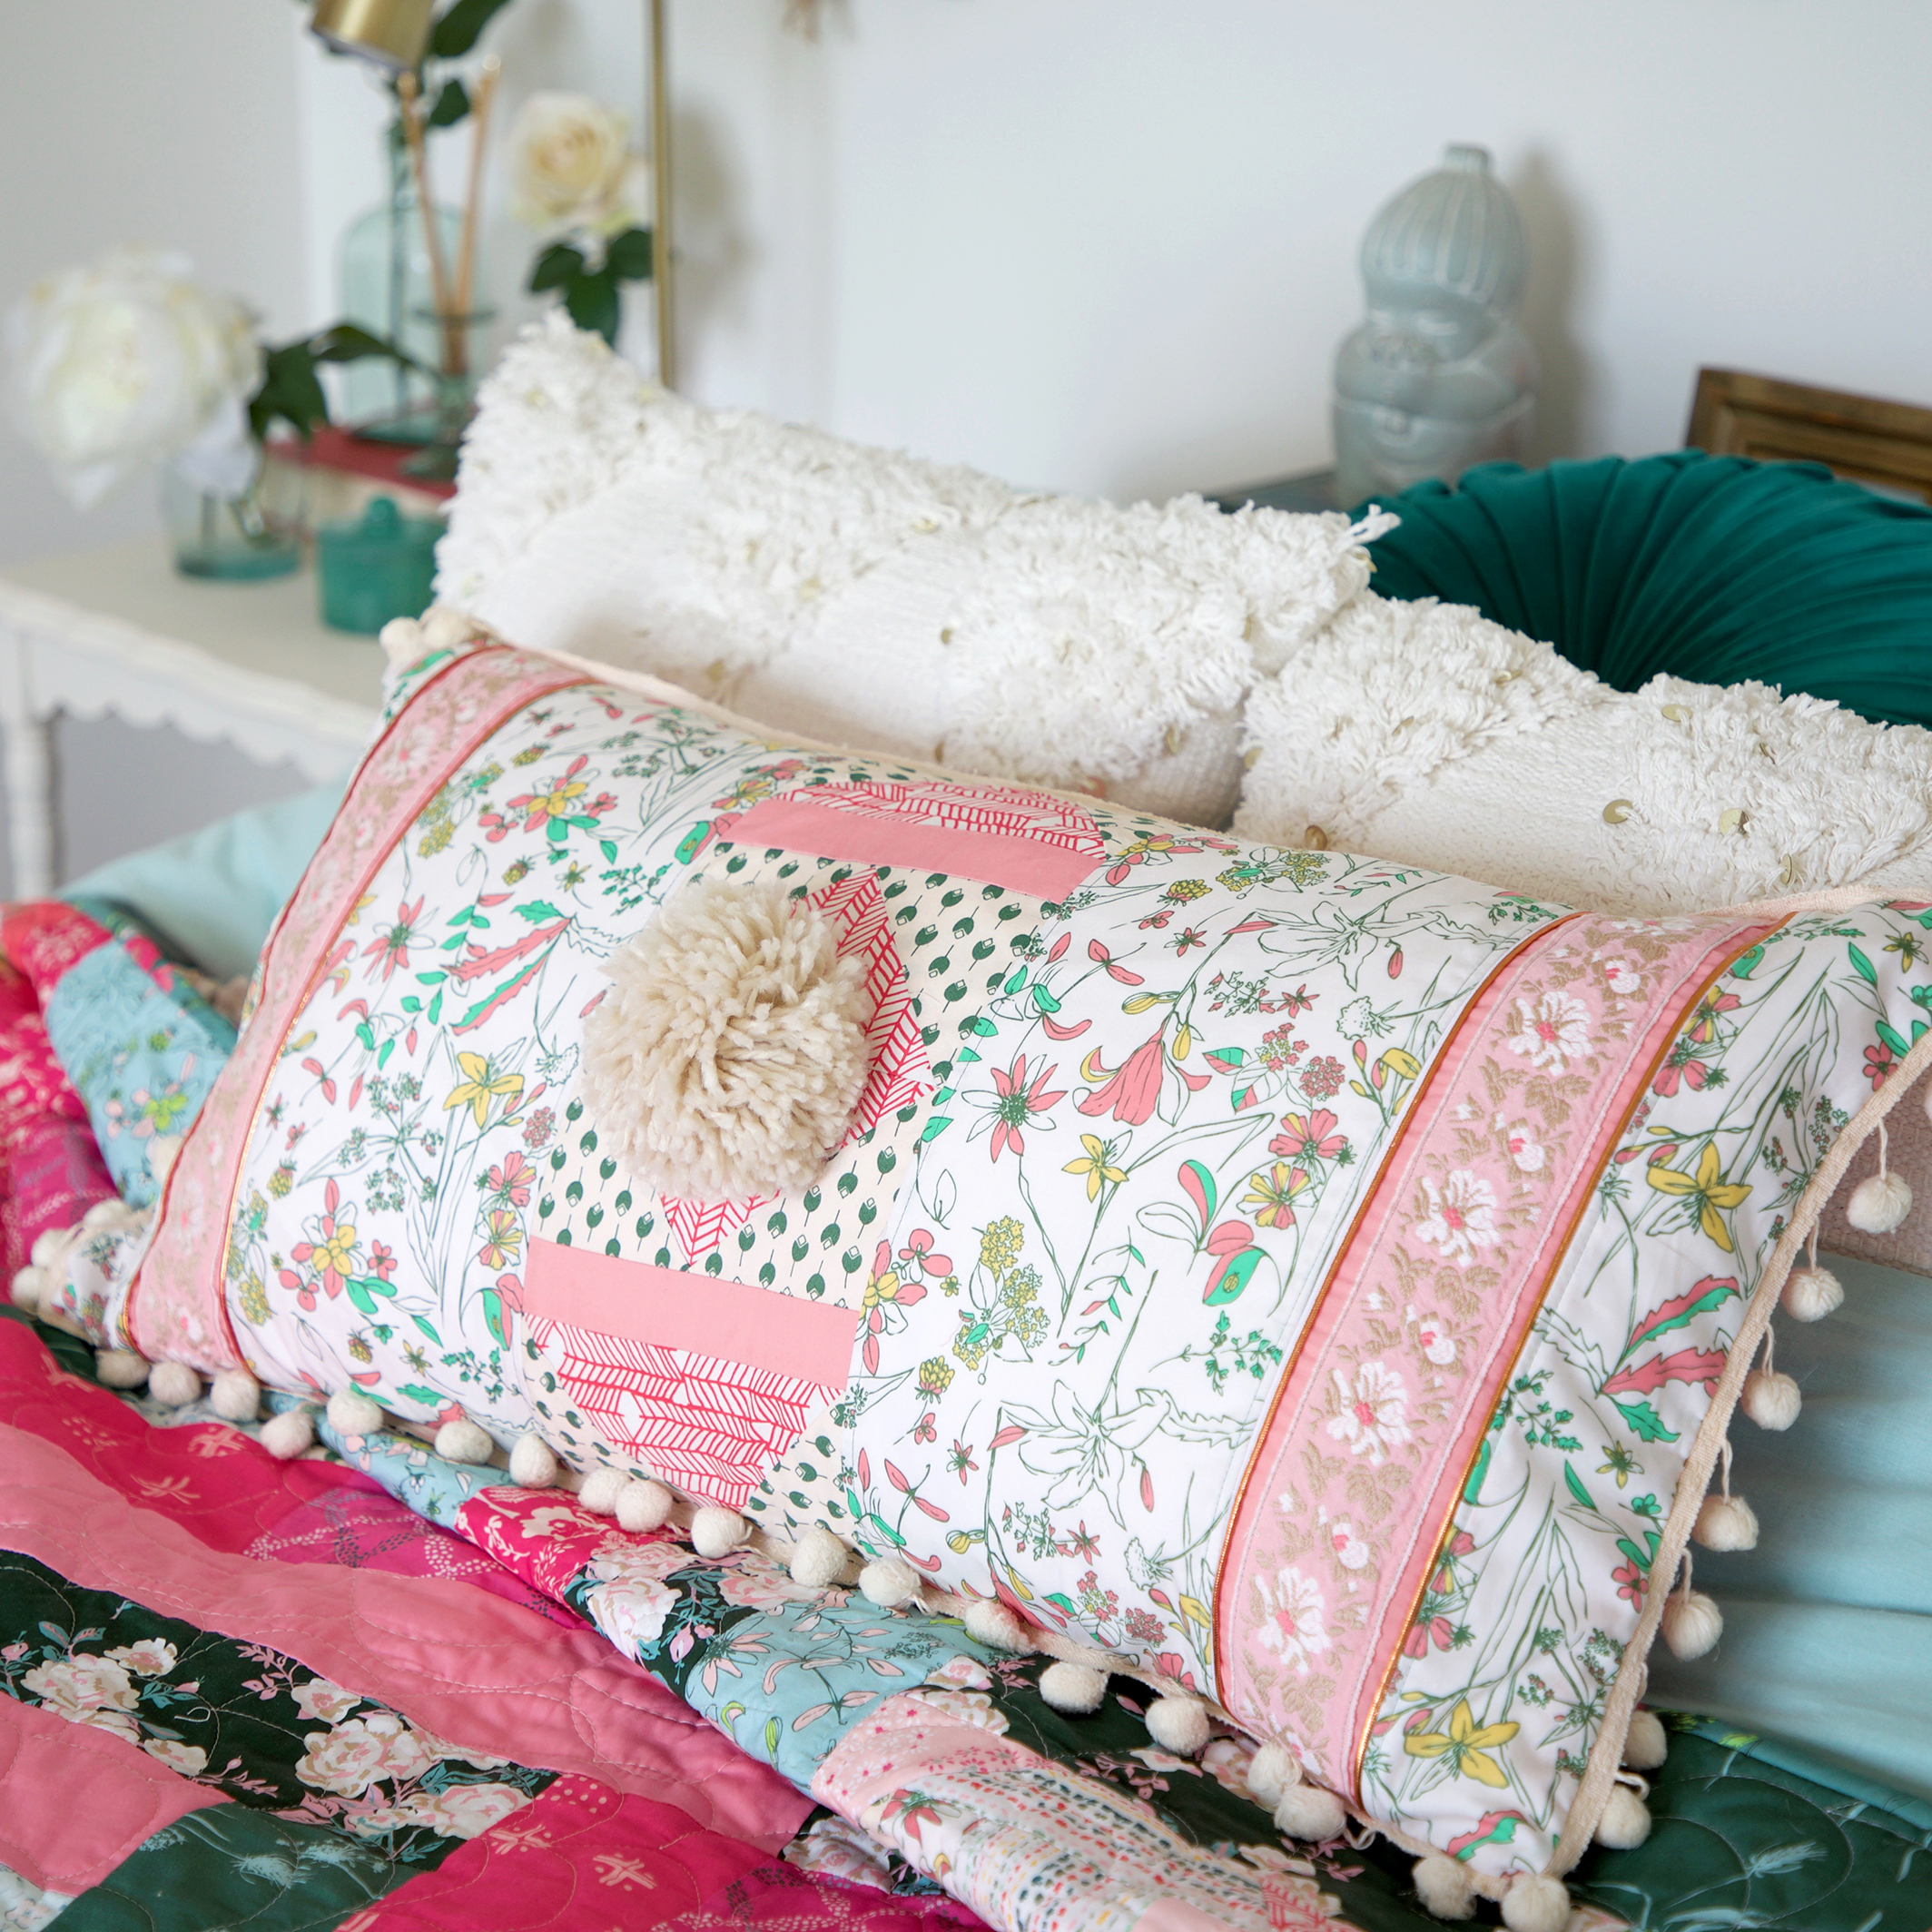 Signature Boho Pillow 3.jpg